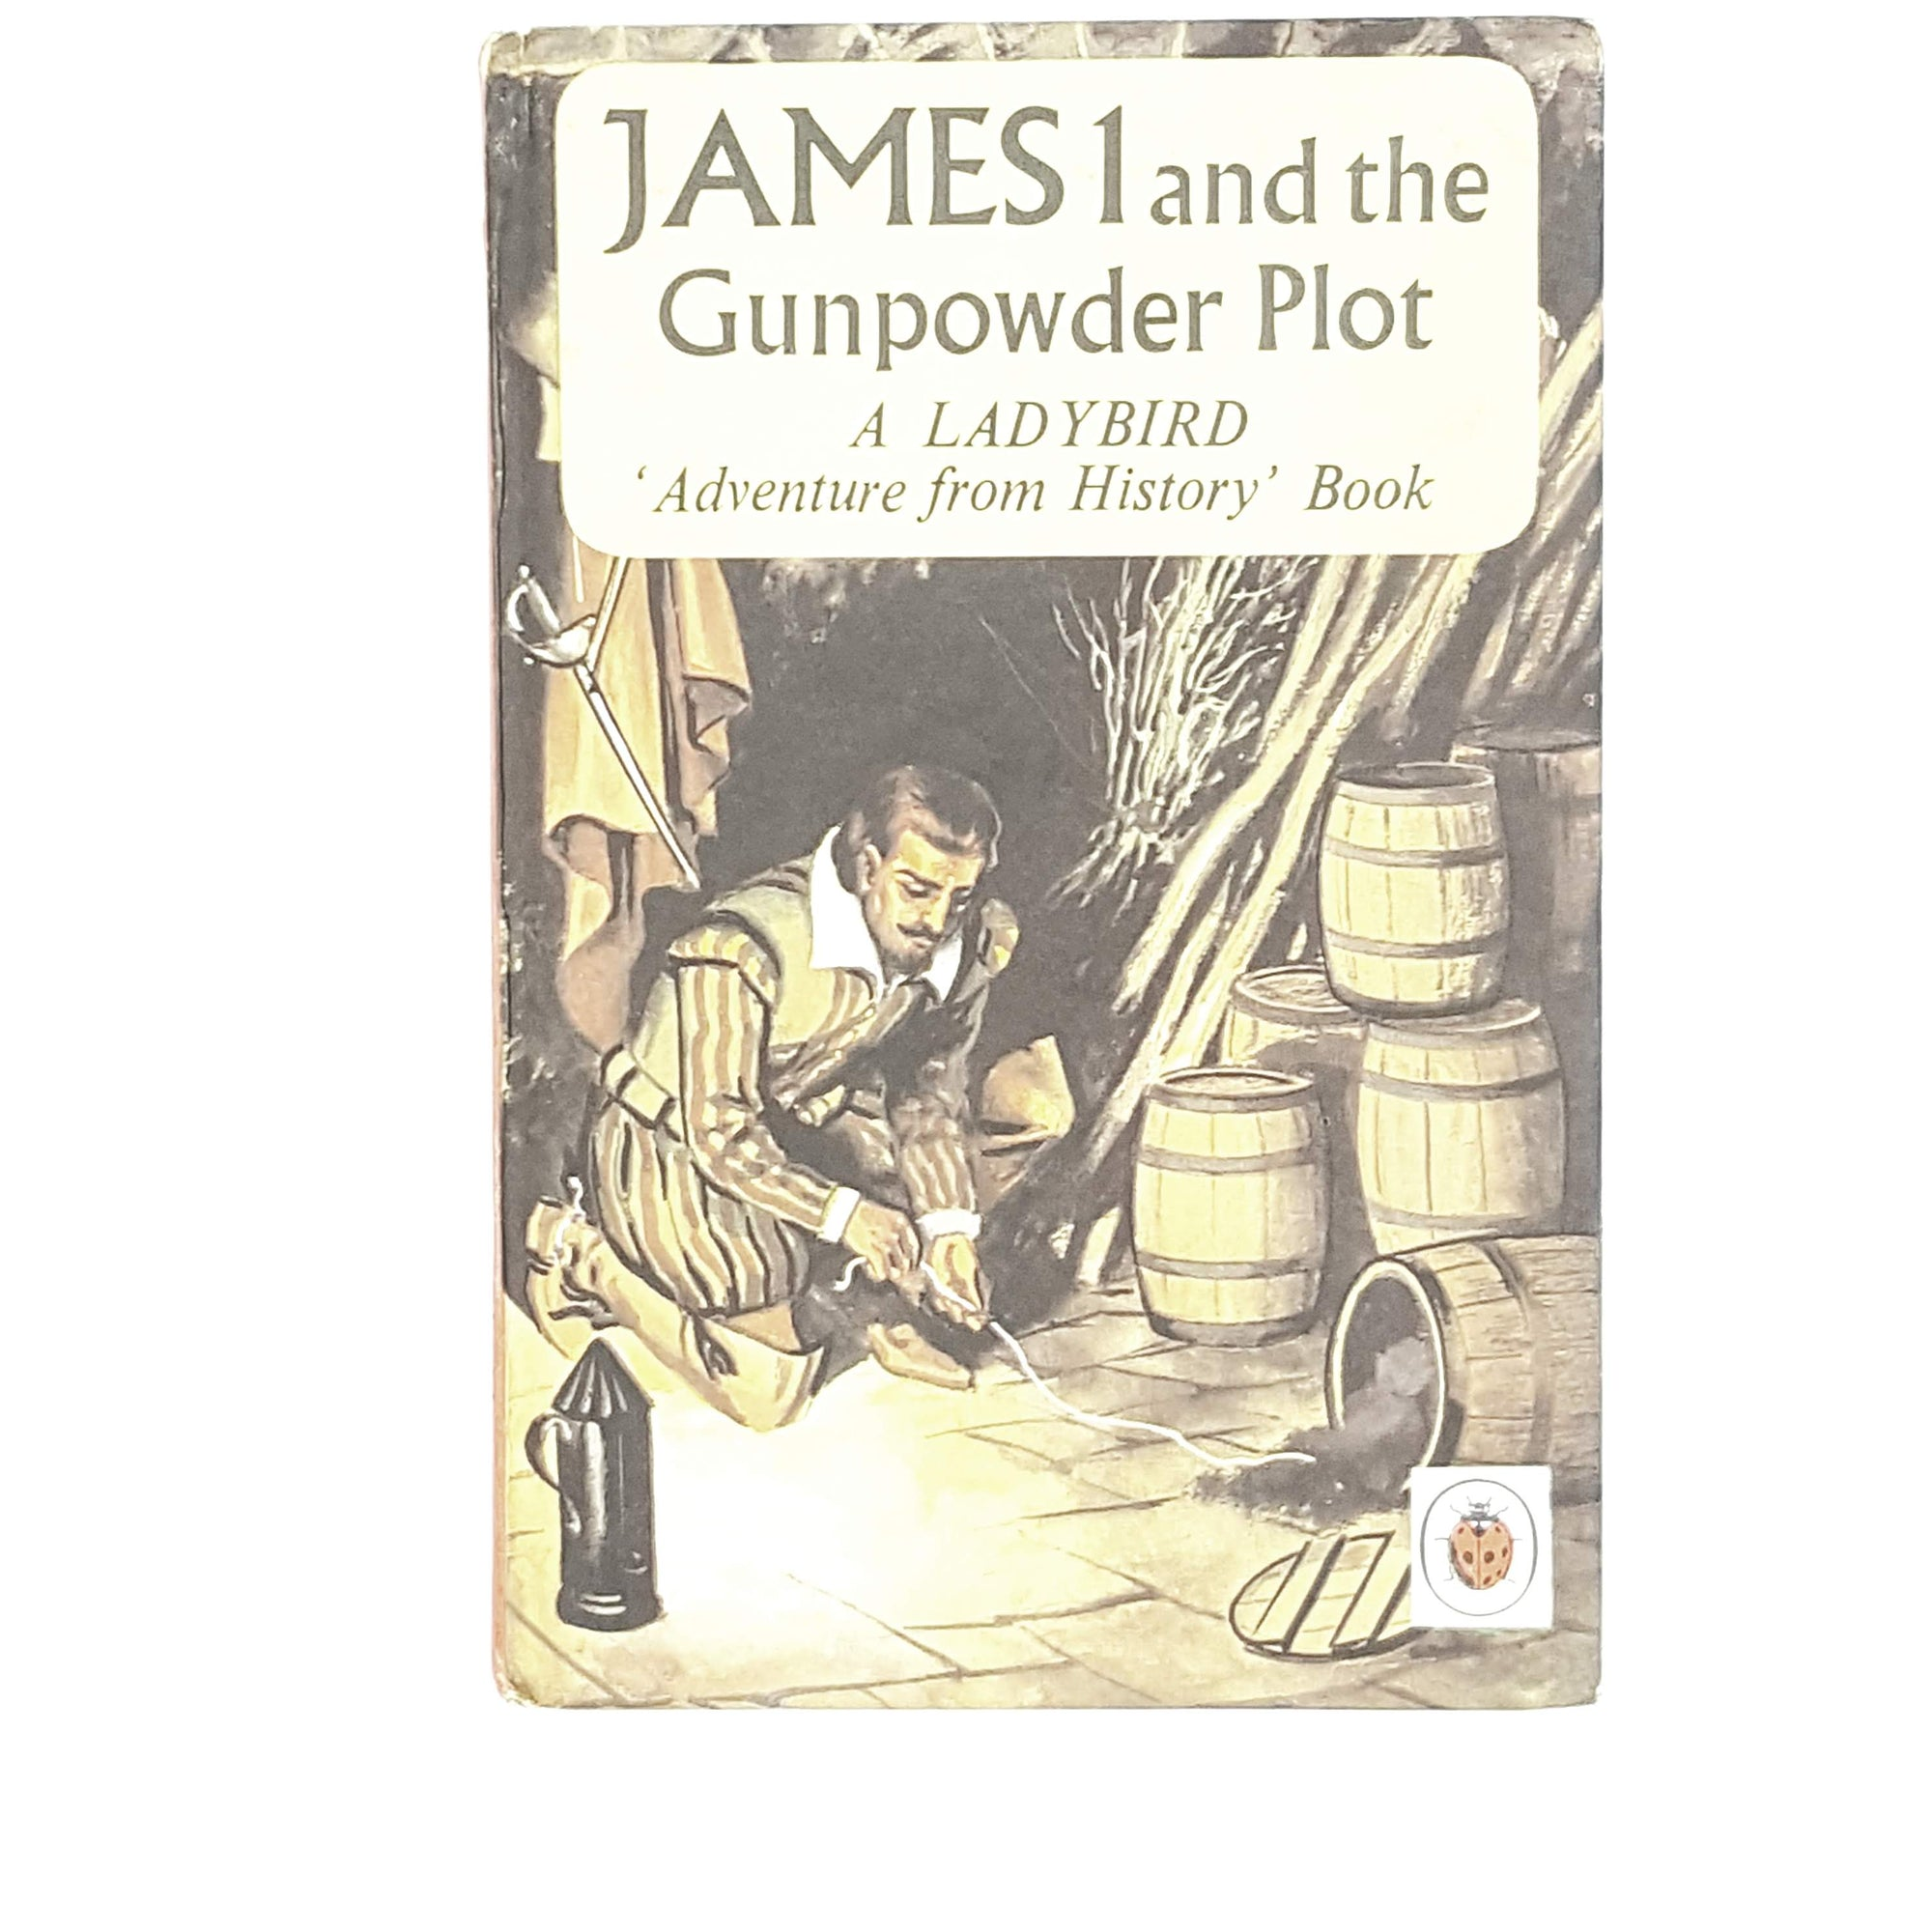 ladybird-history-james-i-and-the-gunpowder-plot-1967-kindergarten-books-country-house-library